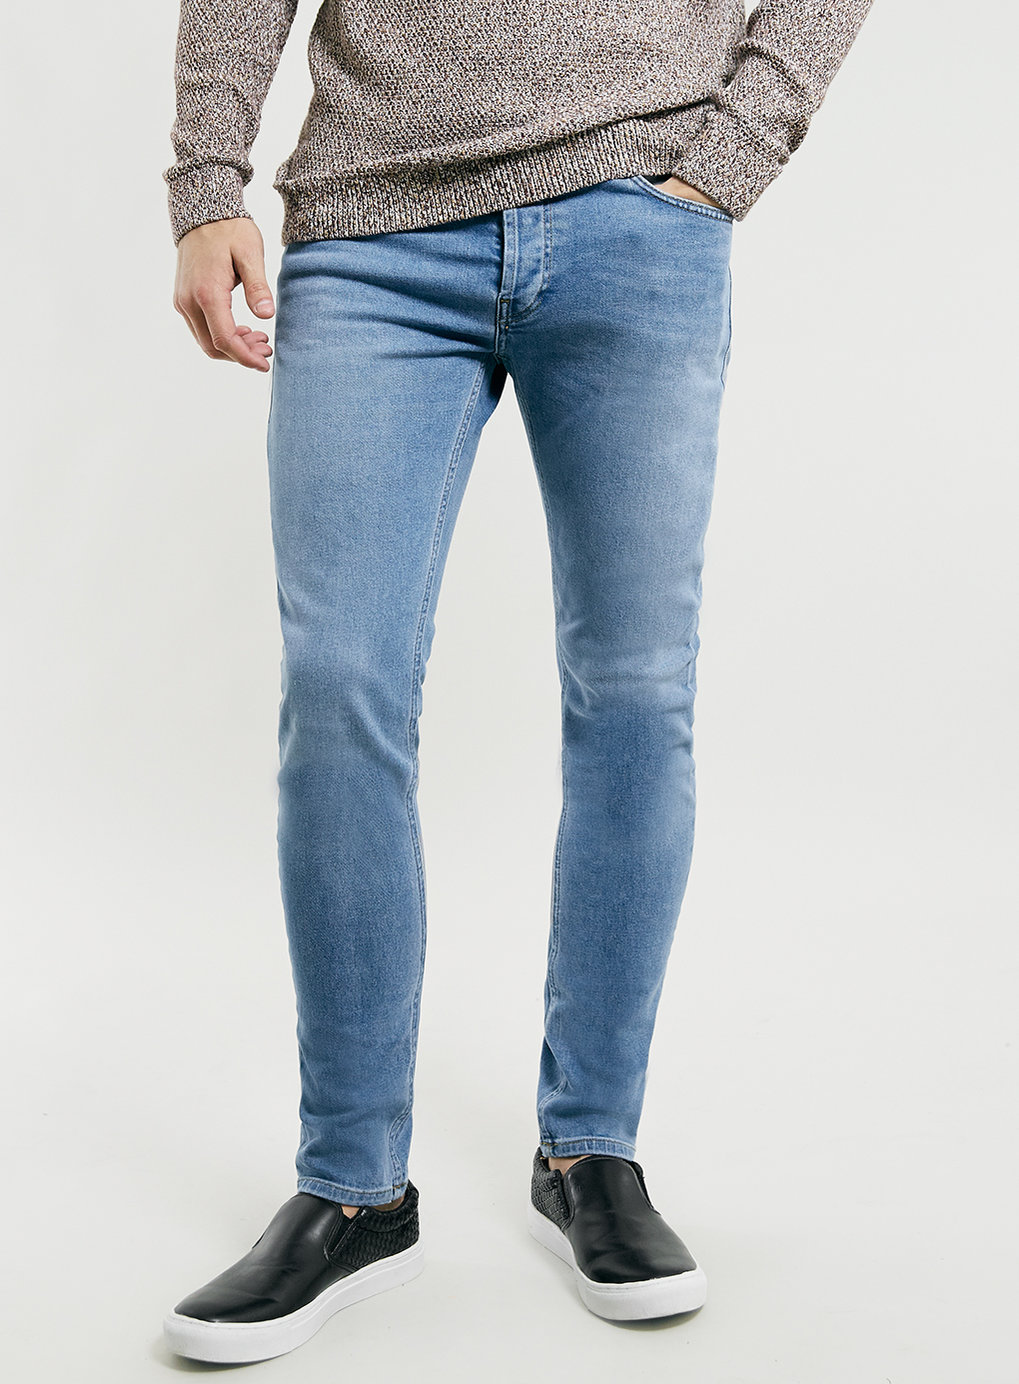 Skinny Jeans Stretch - Is Jeans